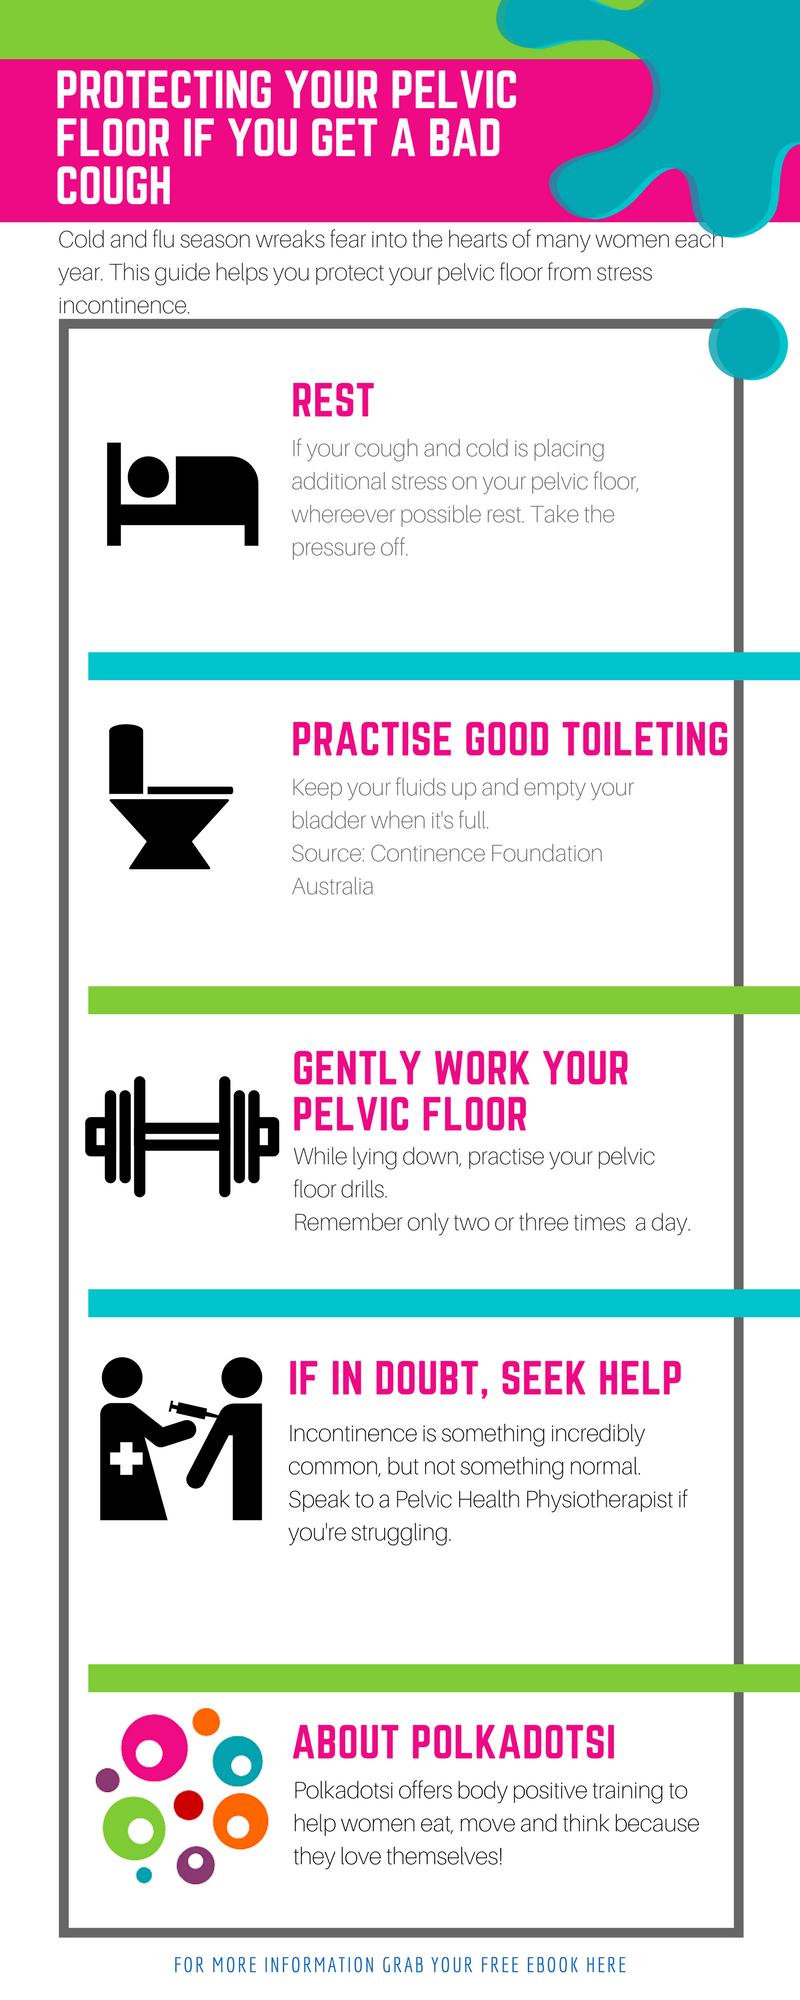 Stress incontinence is incredibly common, but not something we necessarily have to live with. Learn to protect your pelvic floor if you get a bad cold. If you pee when you cough or sneeze this guide is for you.